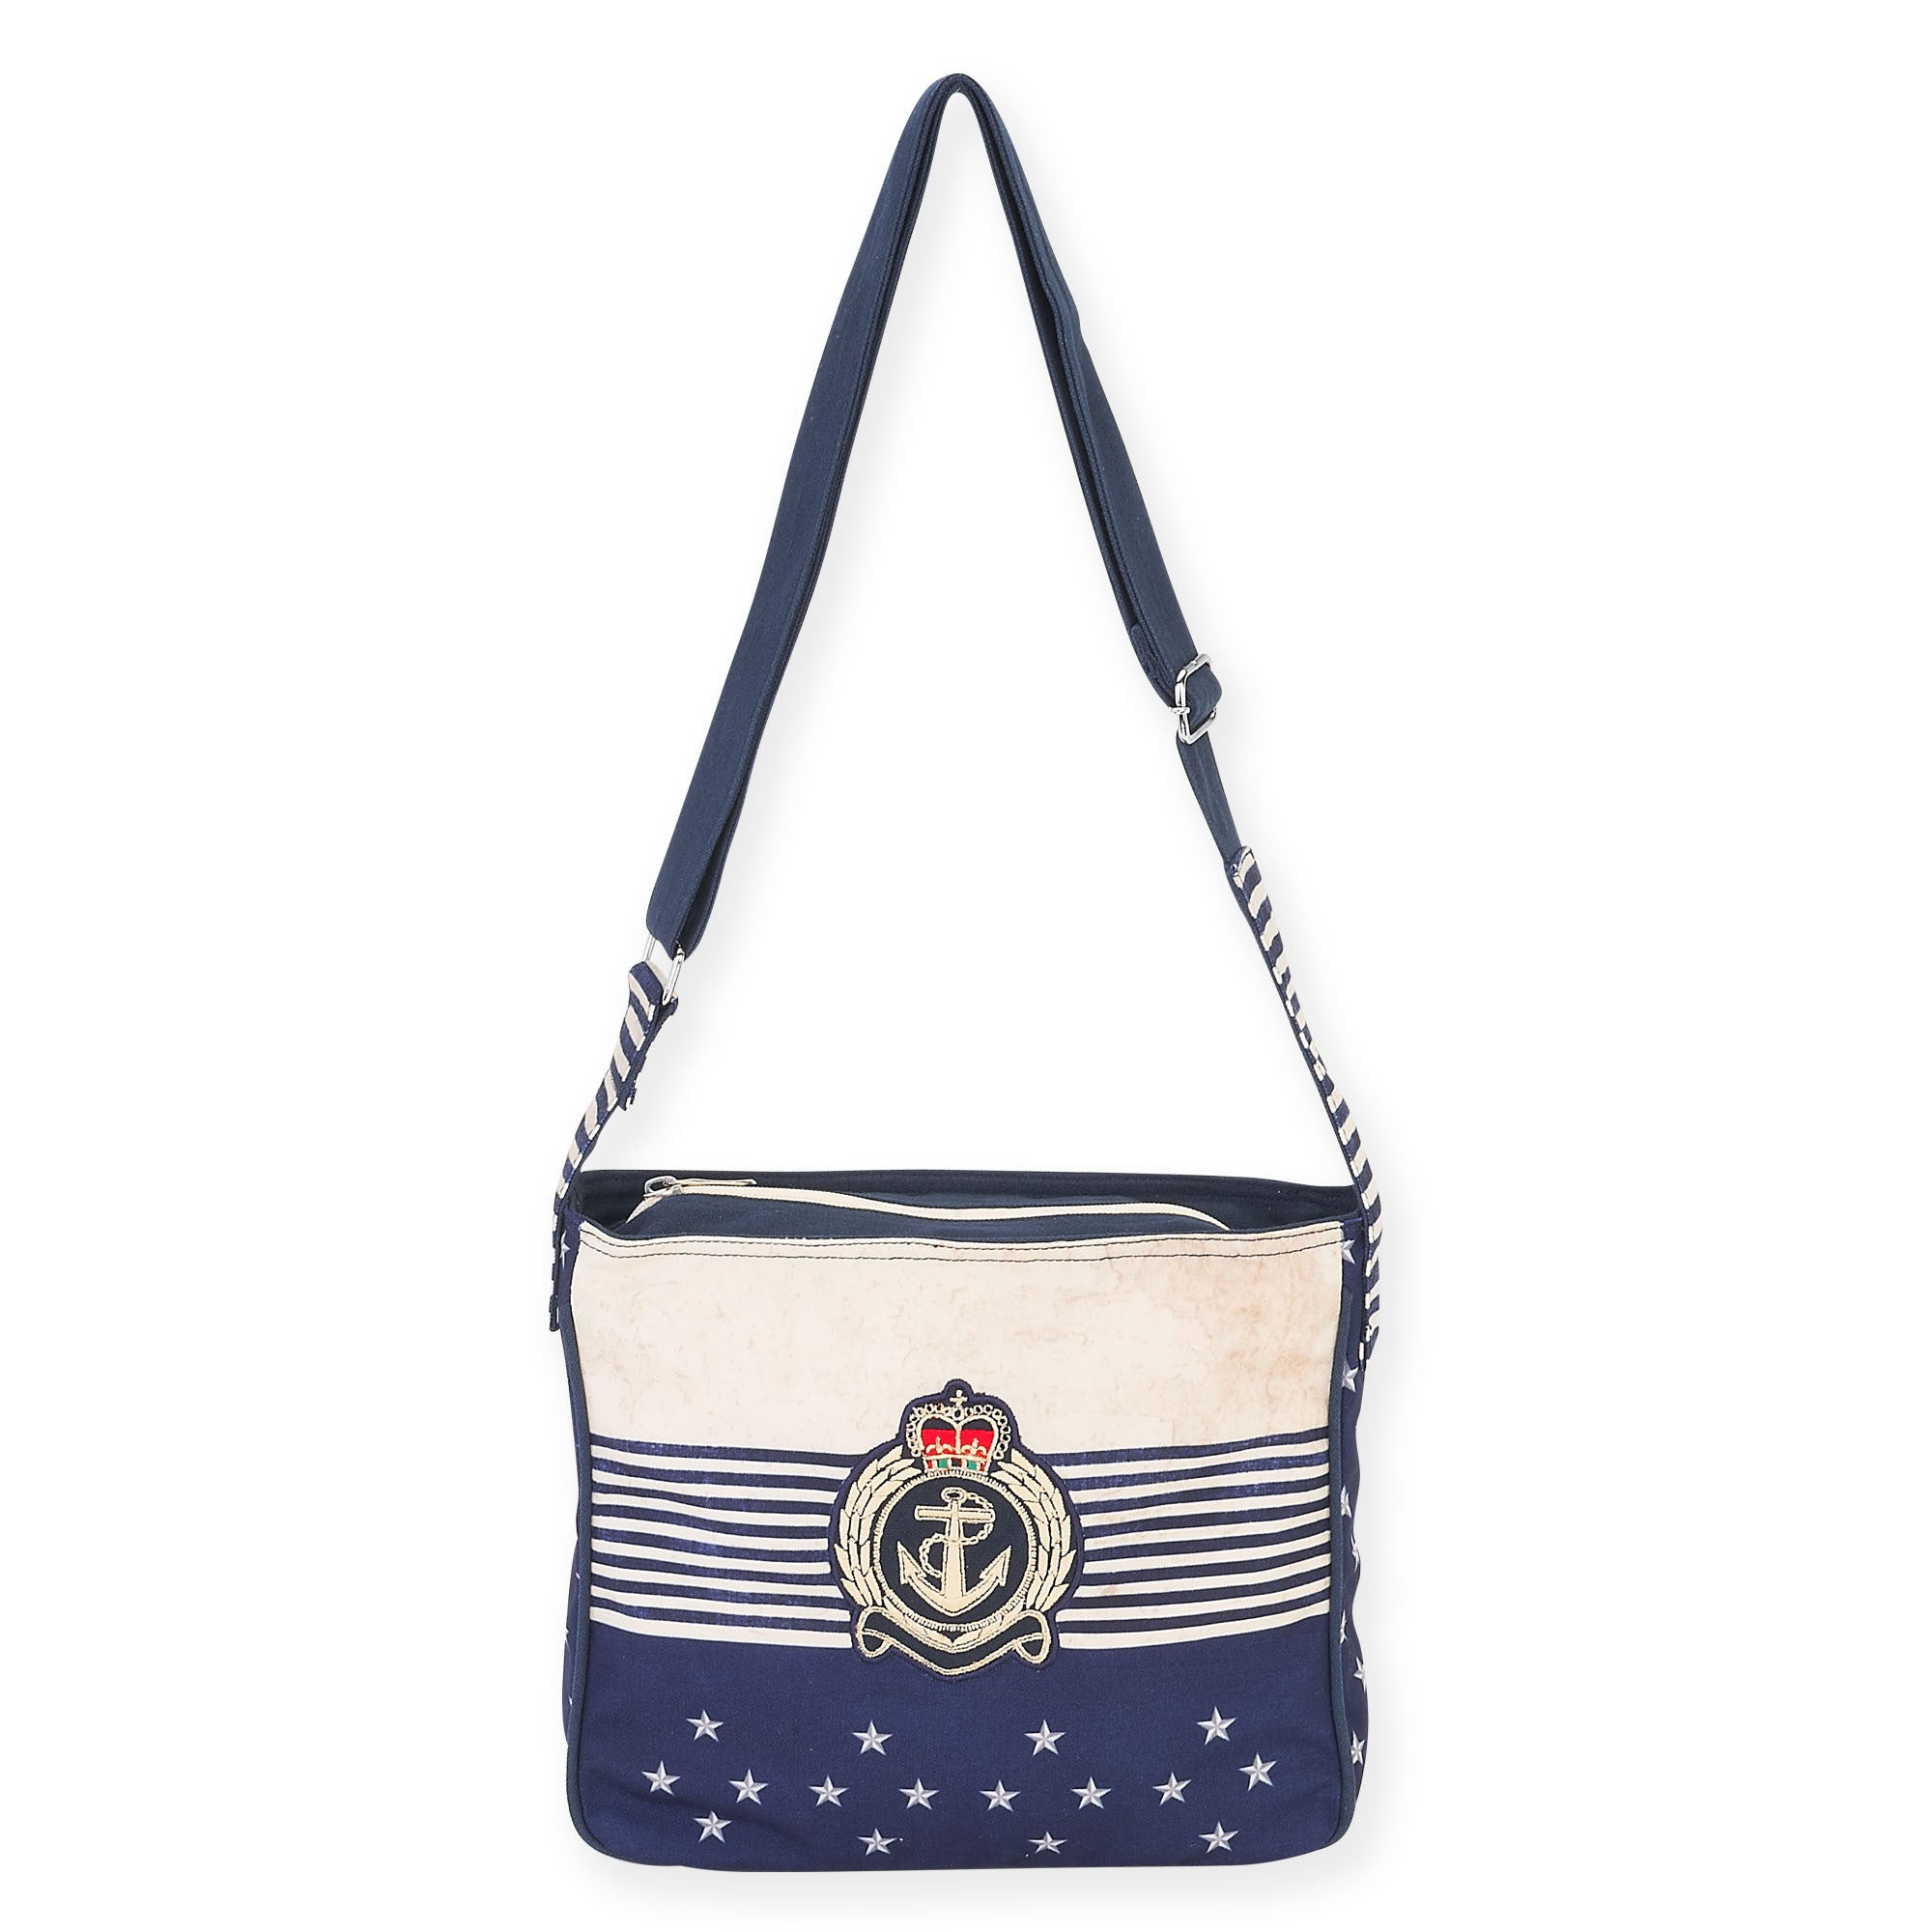 Magnetic South Crossbody